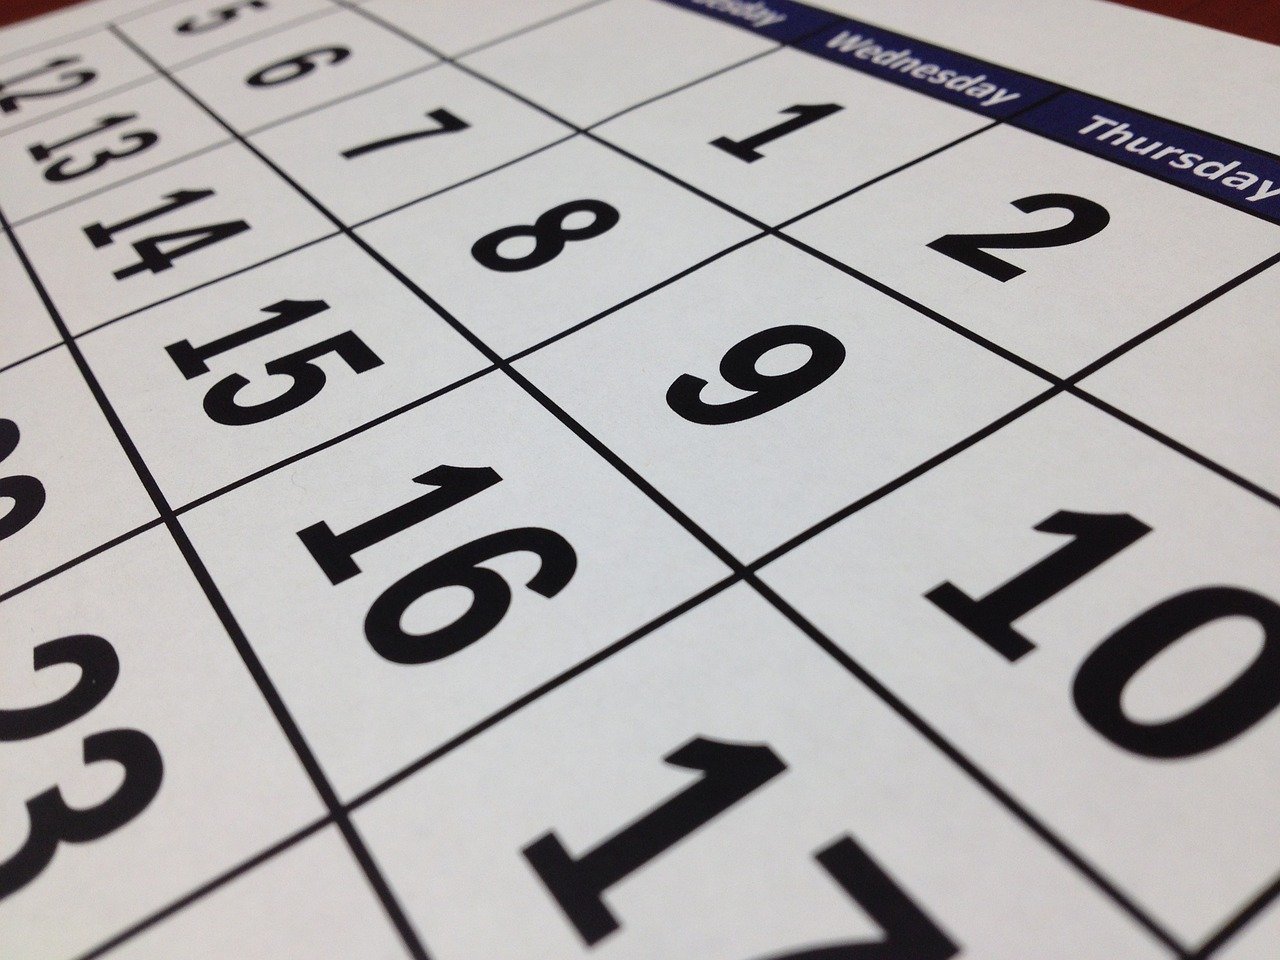 A calendar to set the date when you will relocate from Colorado to California.